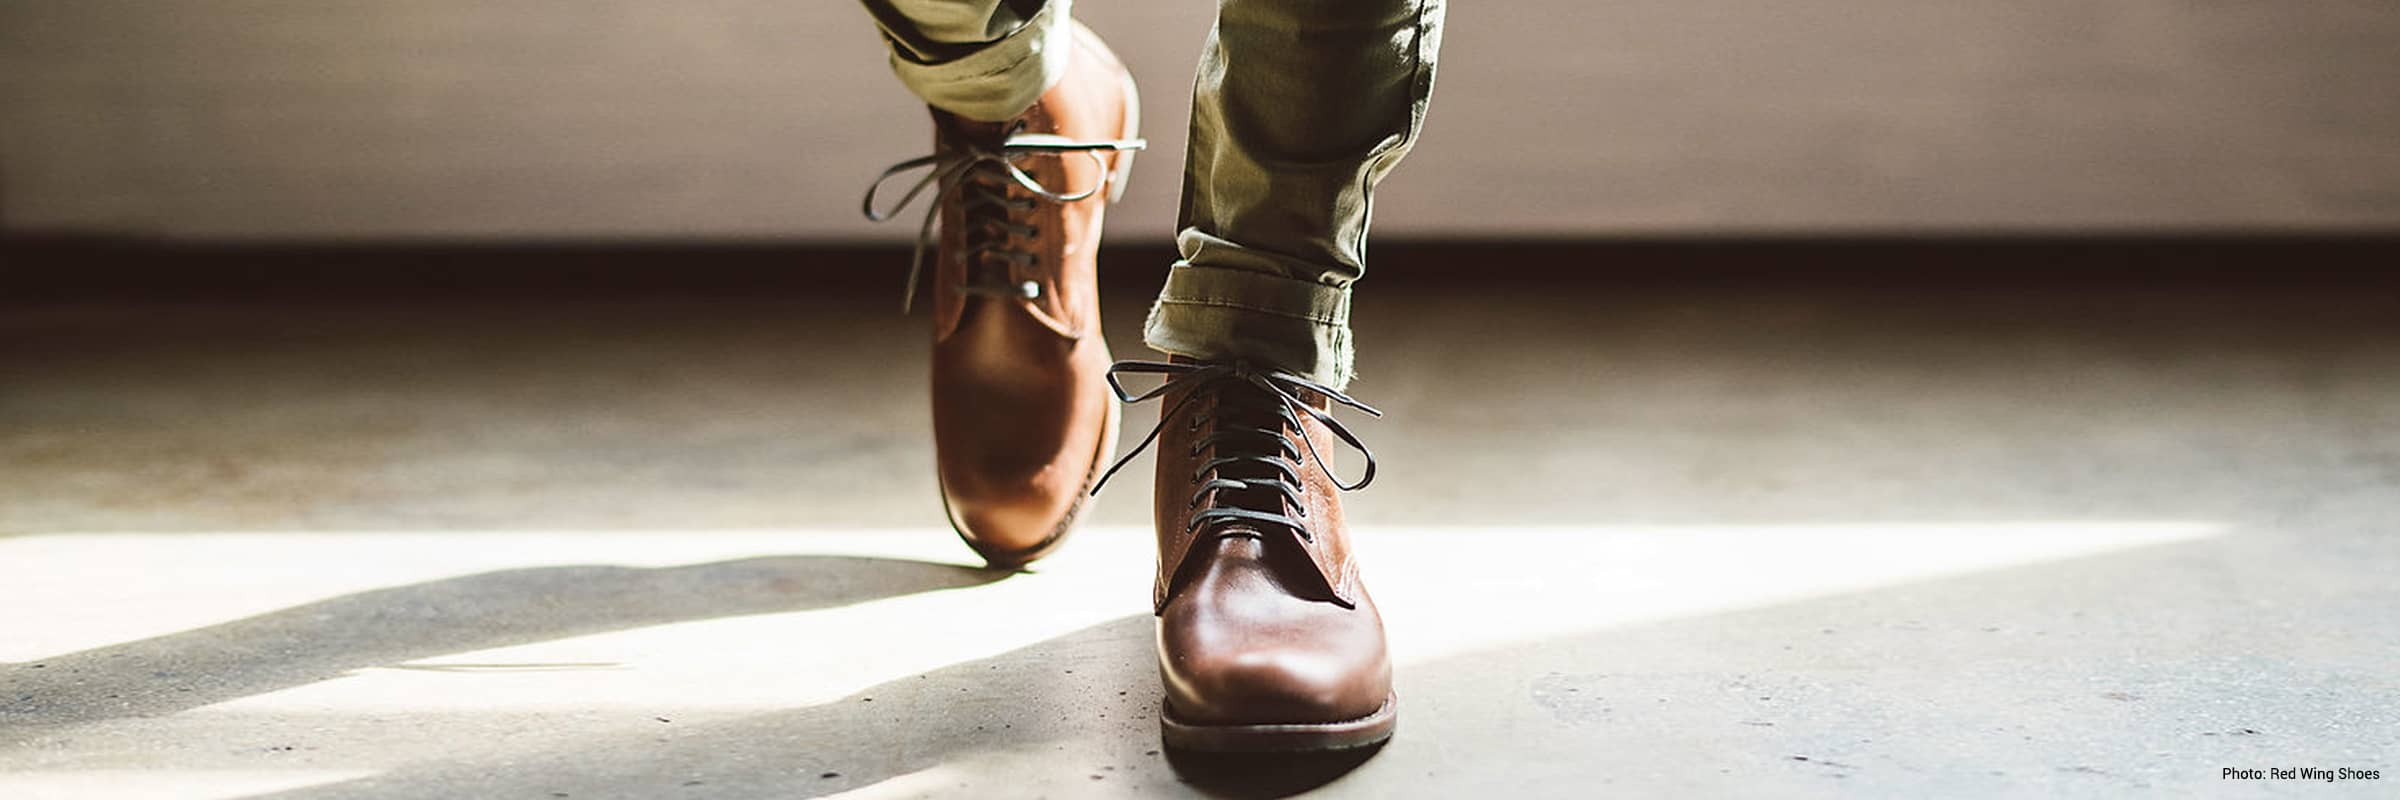 Blundstone, Bogs, Red Wing Shoes, Timberland, UGG Australia, Wolverine. Top 7 Stylish Leather Boots for Men this Fall